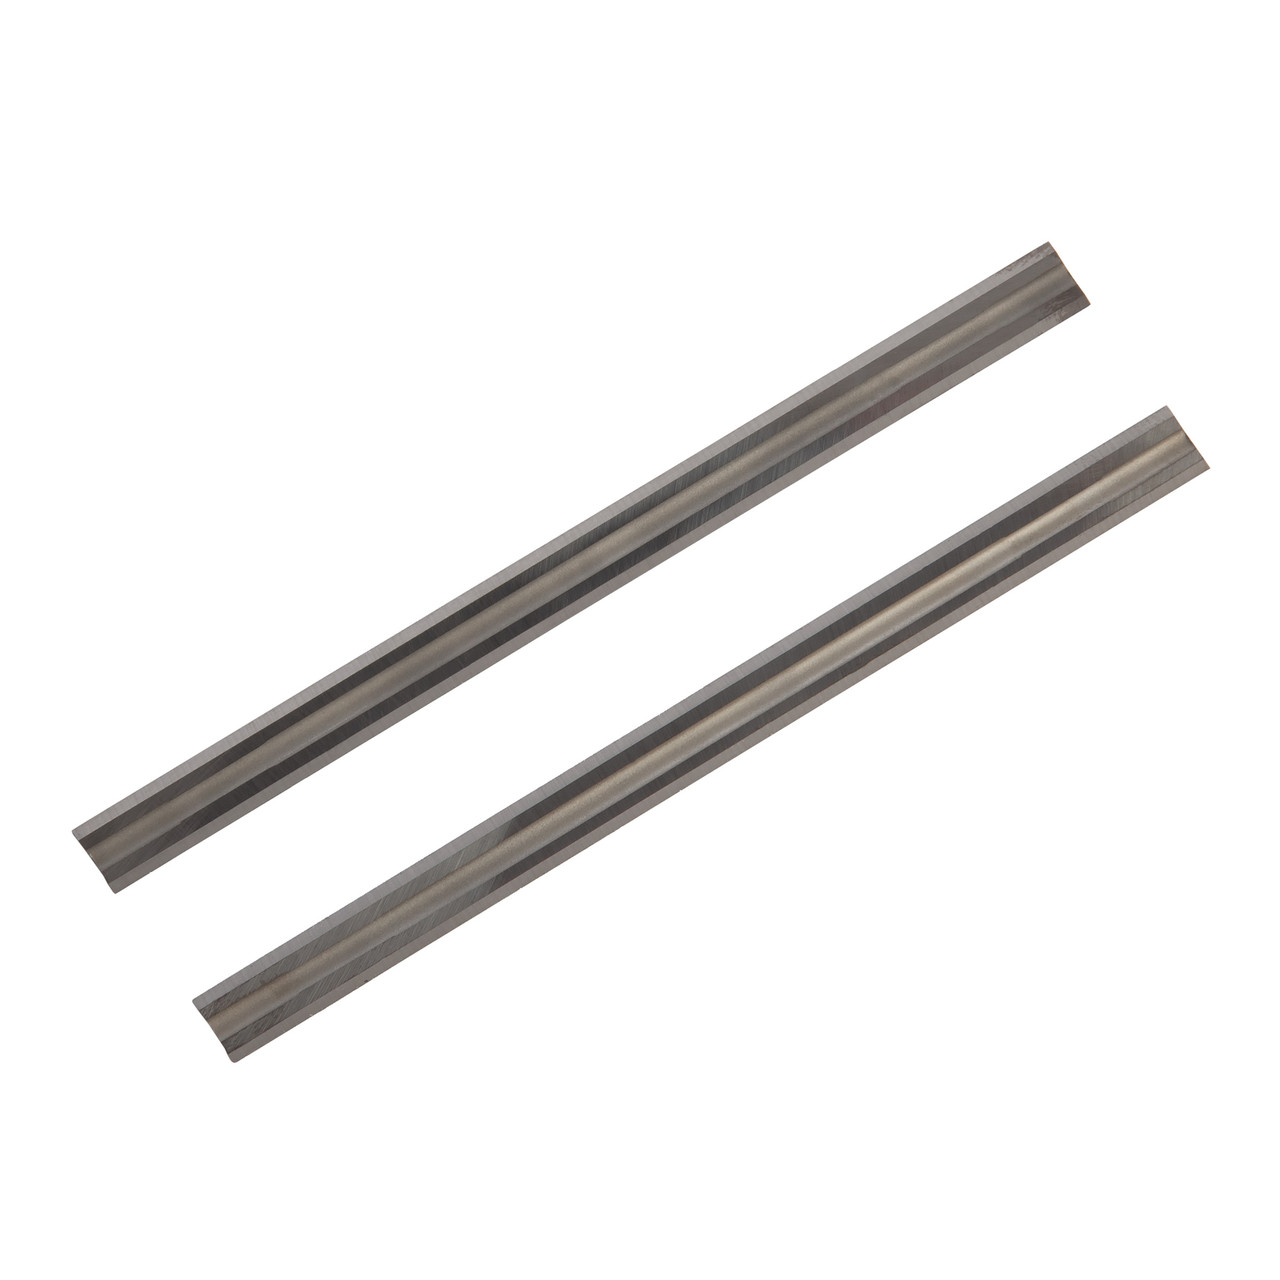 Bosch 2607000096 Replacement Planer Blade Pack of 2